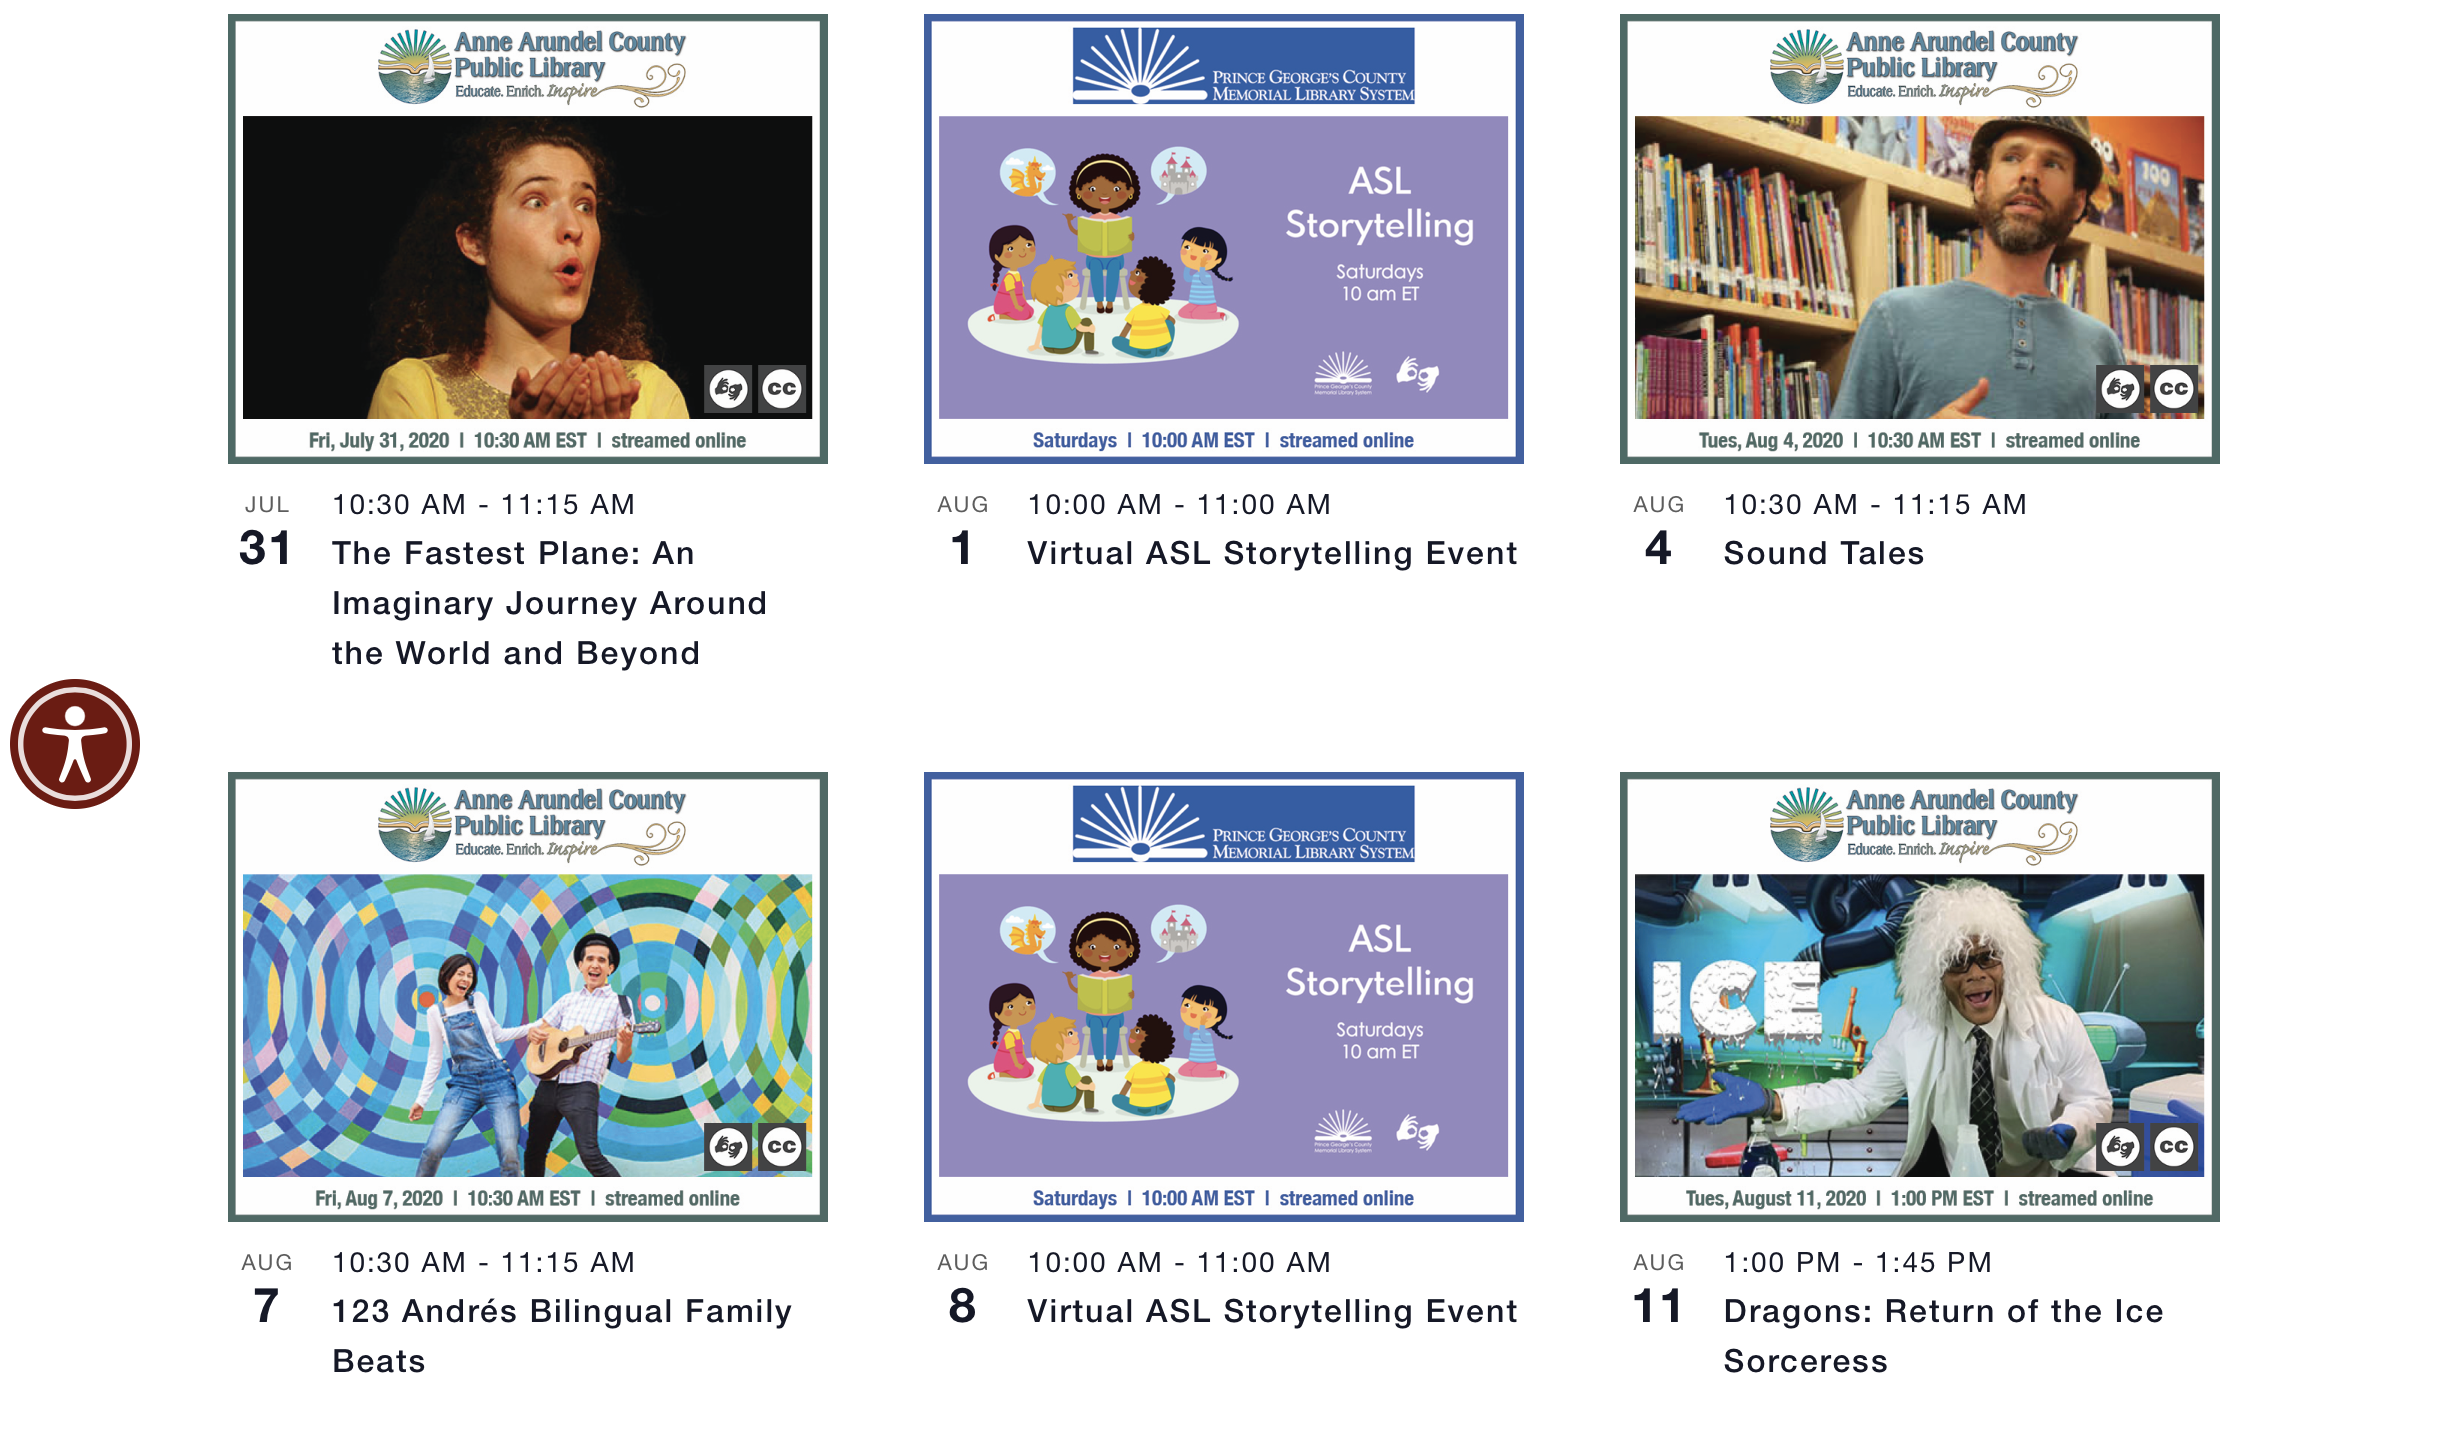 a screenshot of 6 calendar events with various images in a 3 column design with event dates and titles in smaller text below images